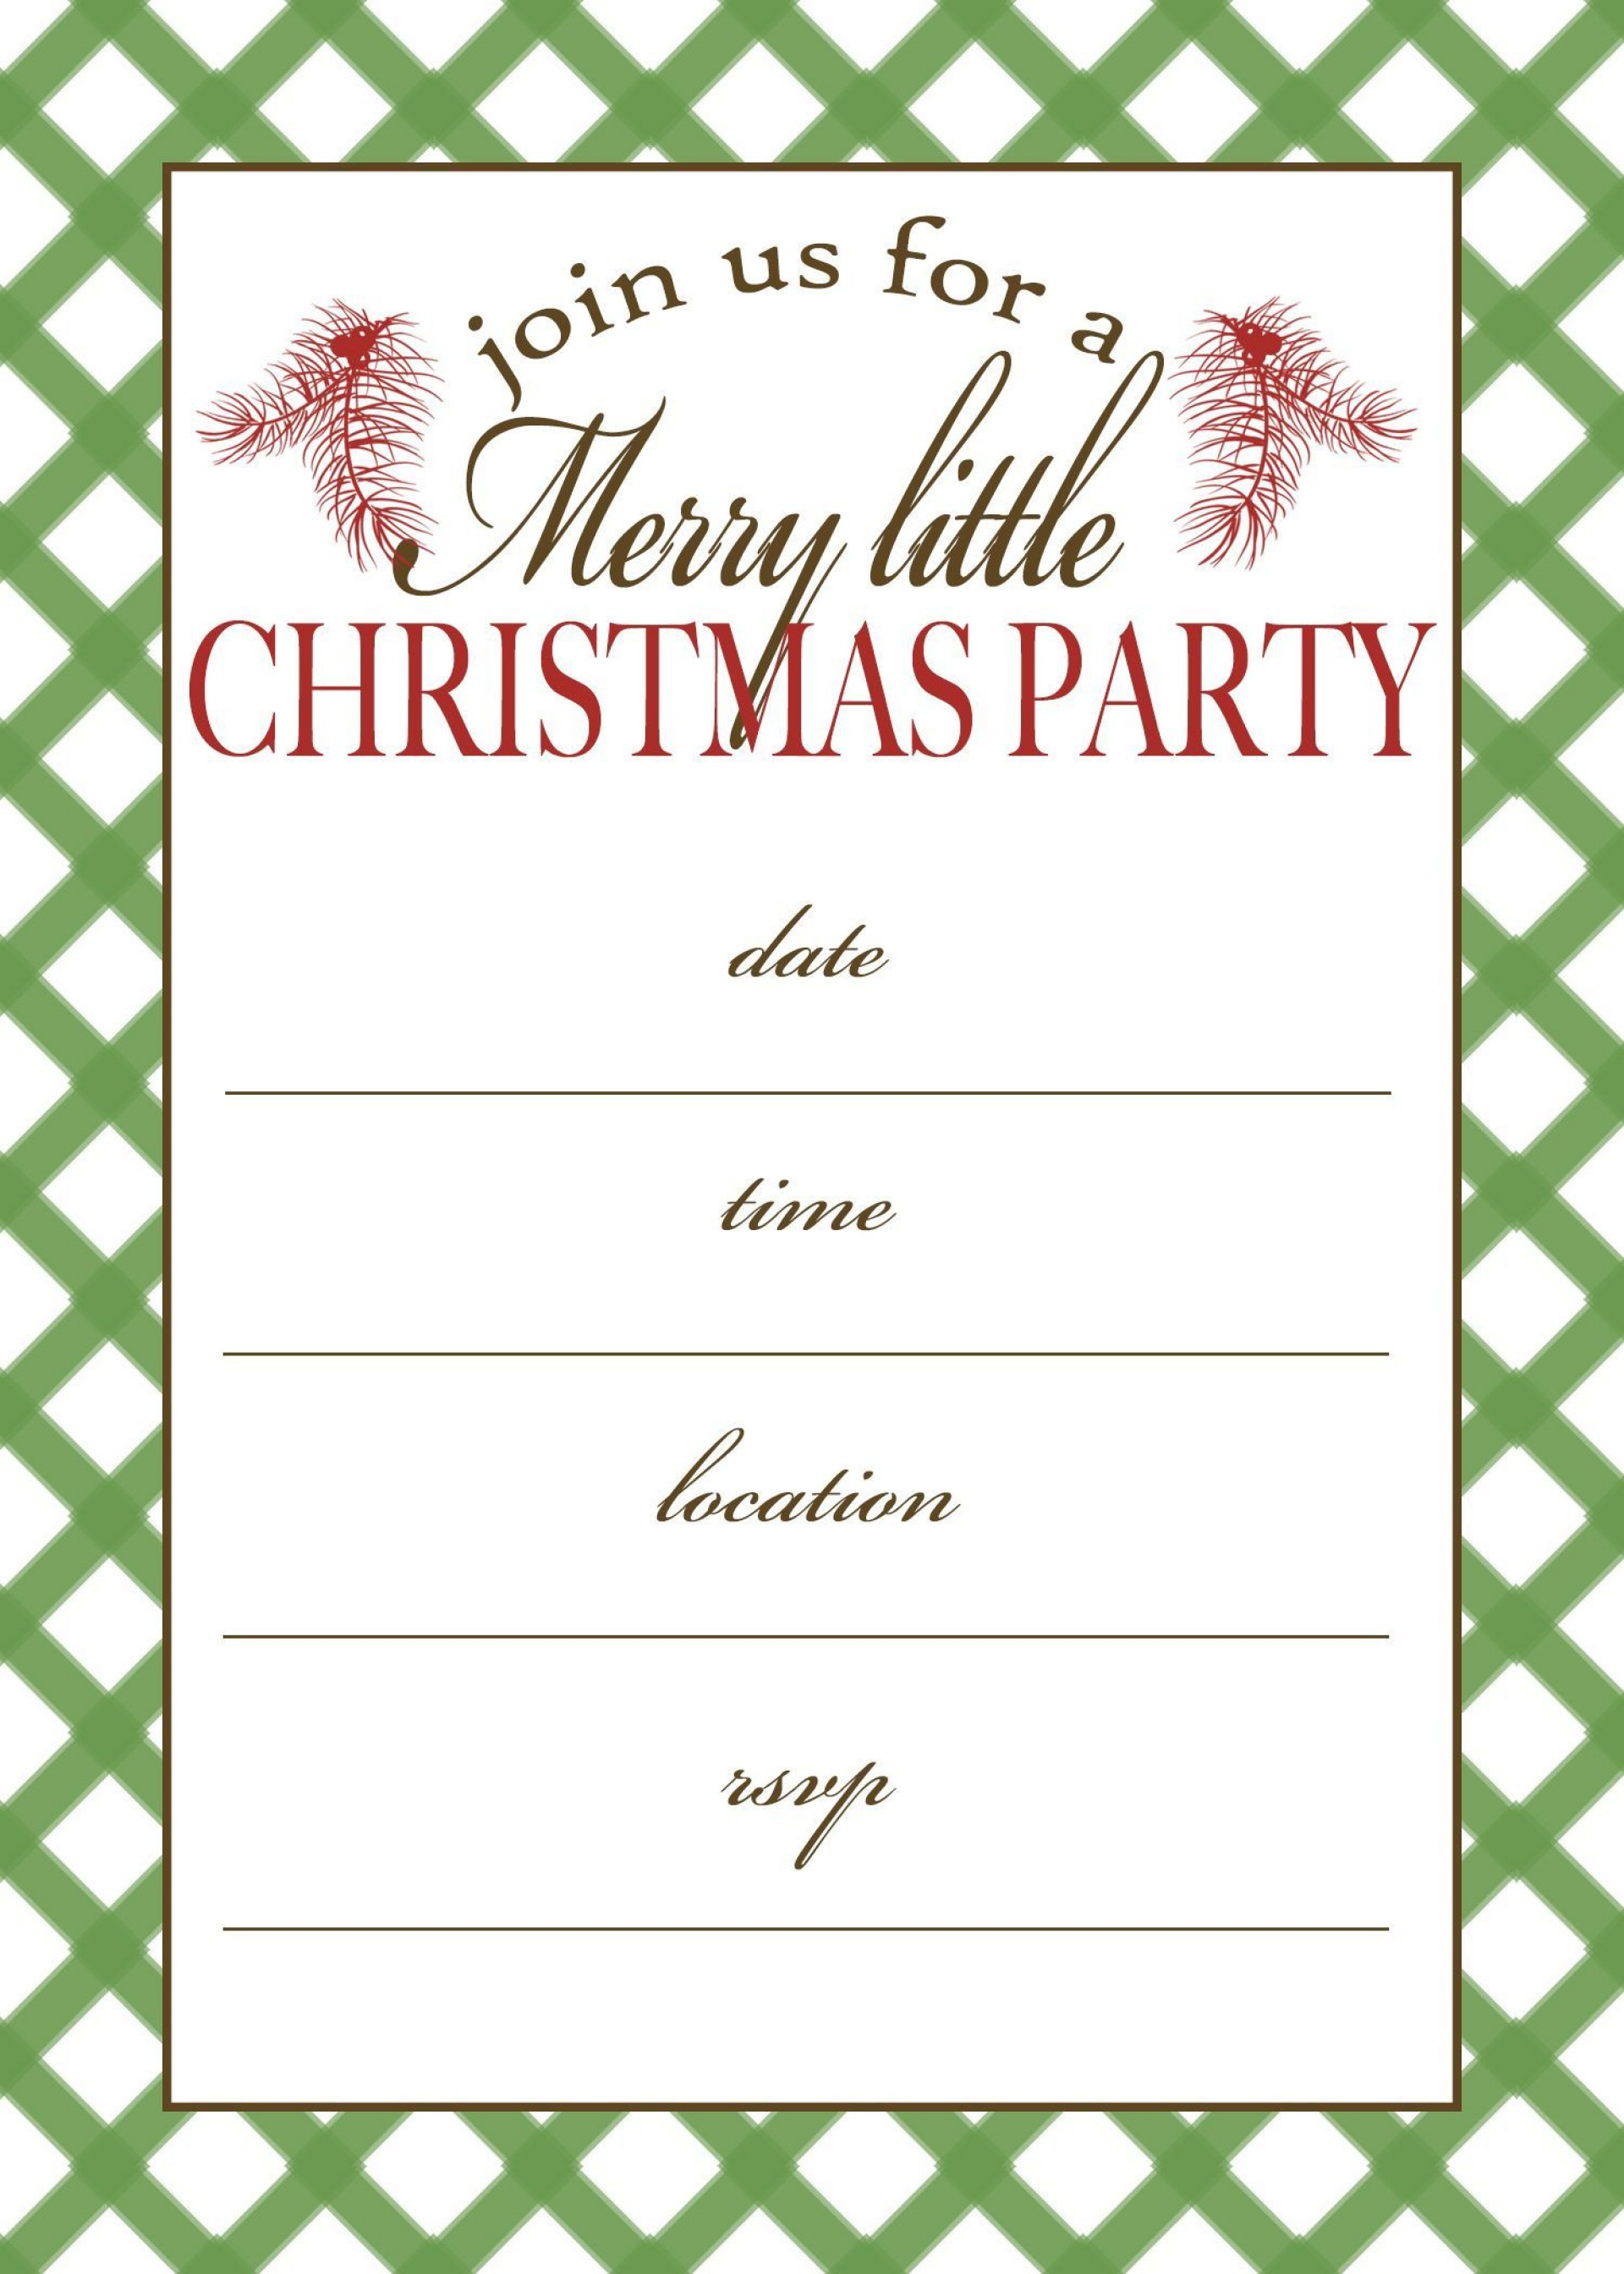 001 Incredible Christma Party Invitation Template Sample  Holiday Download Free Psd1920